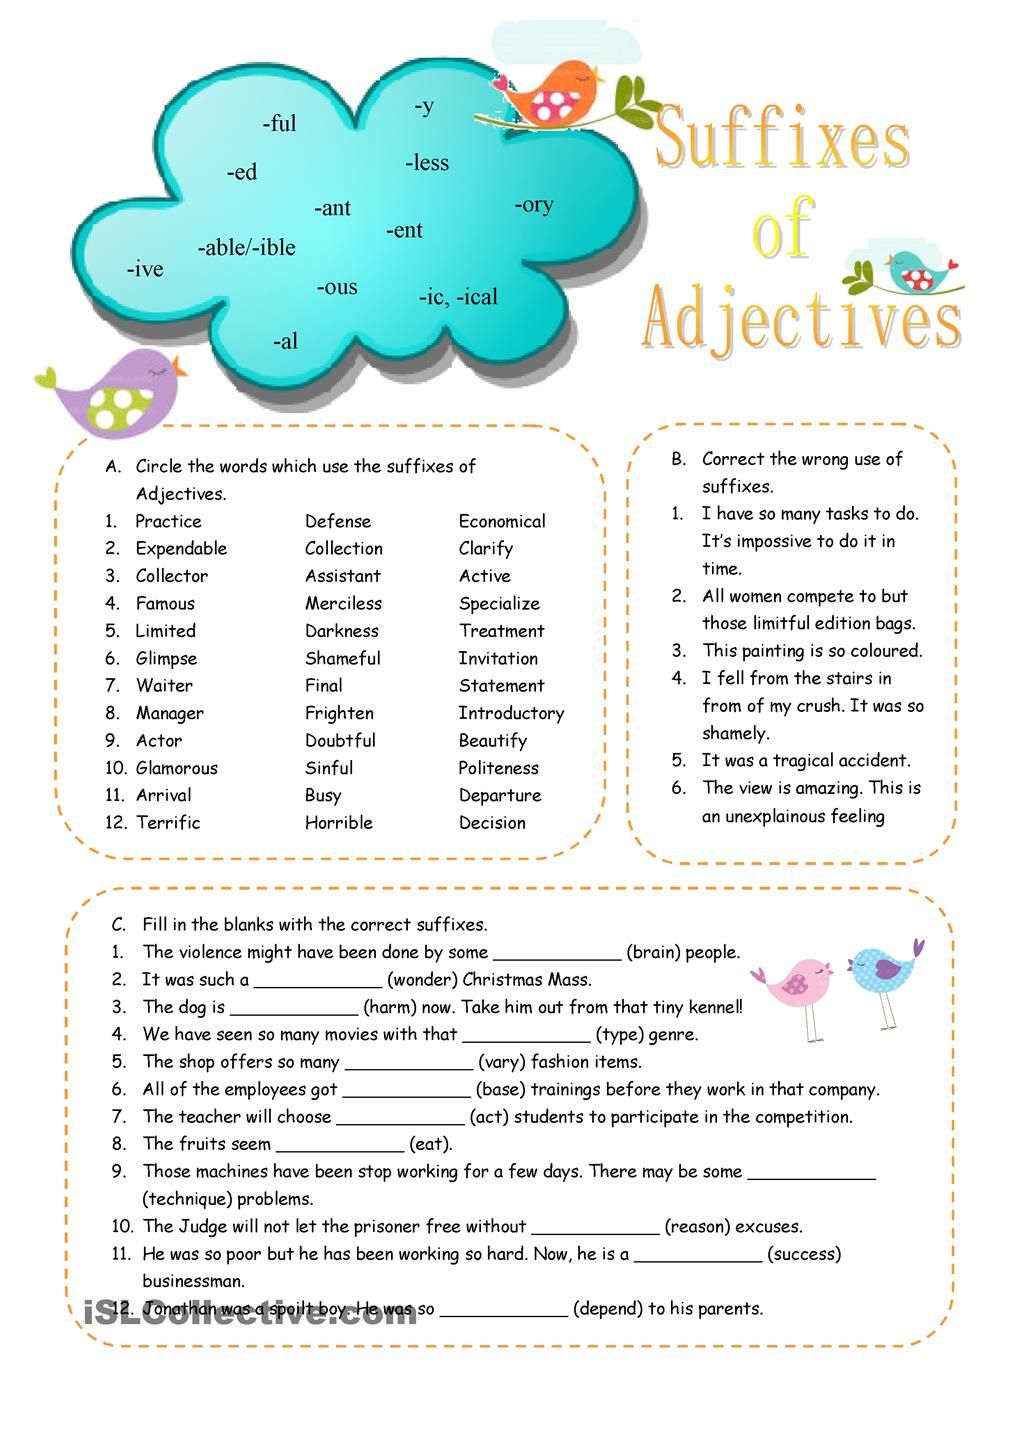 Suffixes of Adjectives | Education! | Pinterest | English ...